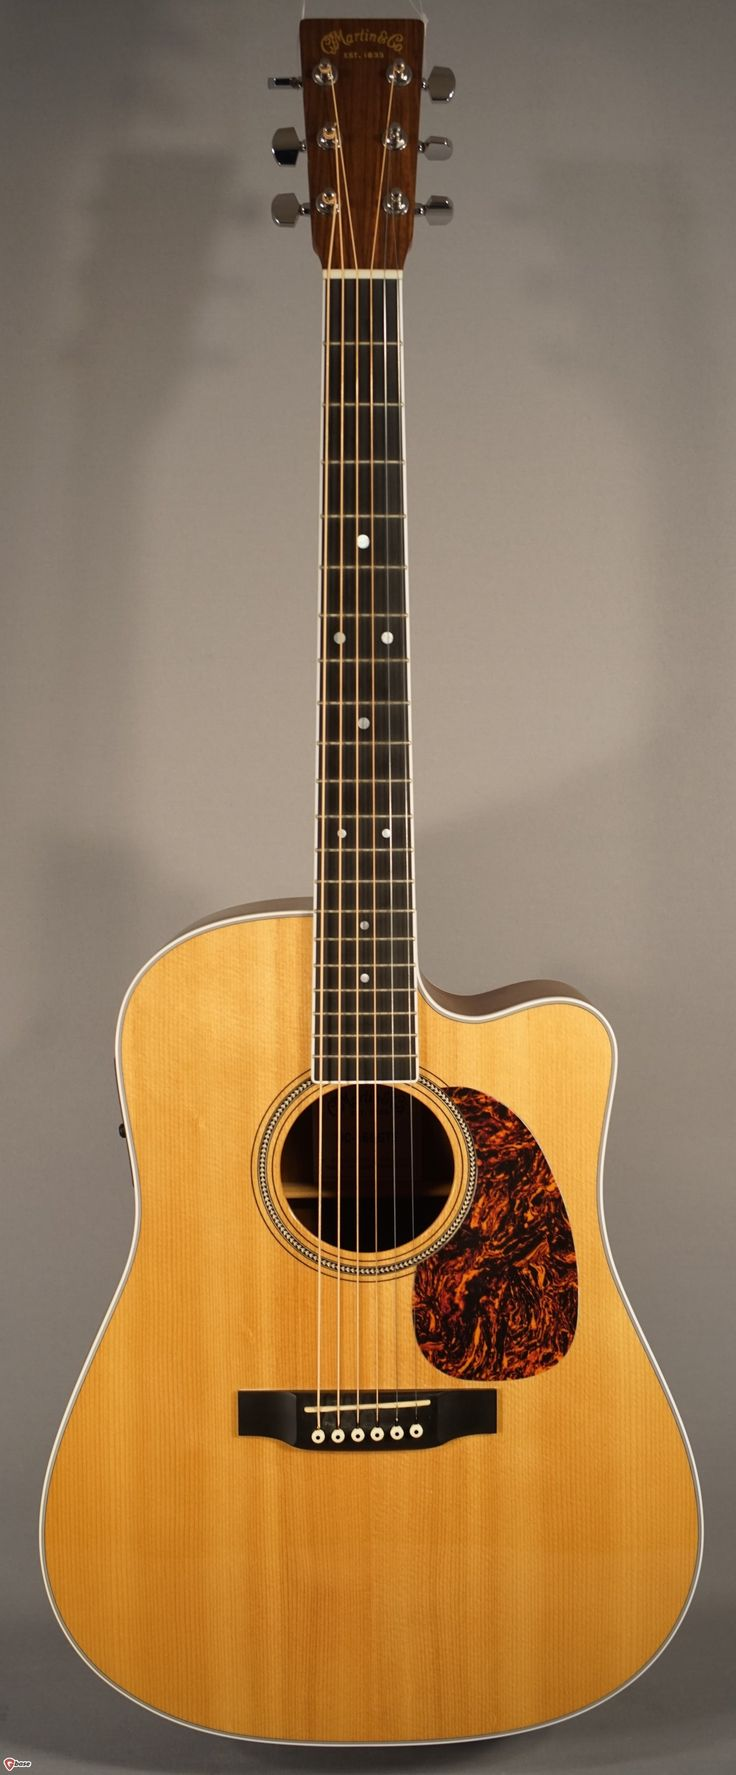 Martin Guitars USED! 2008 MARTIN DC-160GTE Acoustic Guitar With Case! > Guitars Acoustic | The Guitar Shoppe